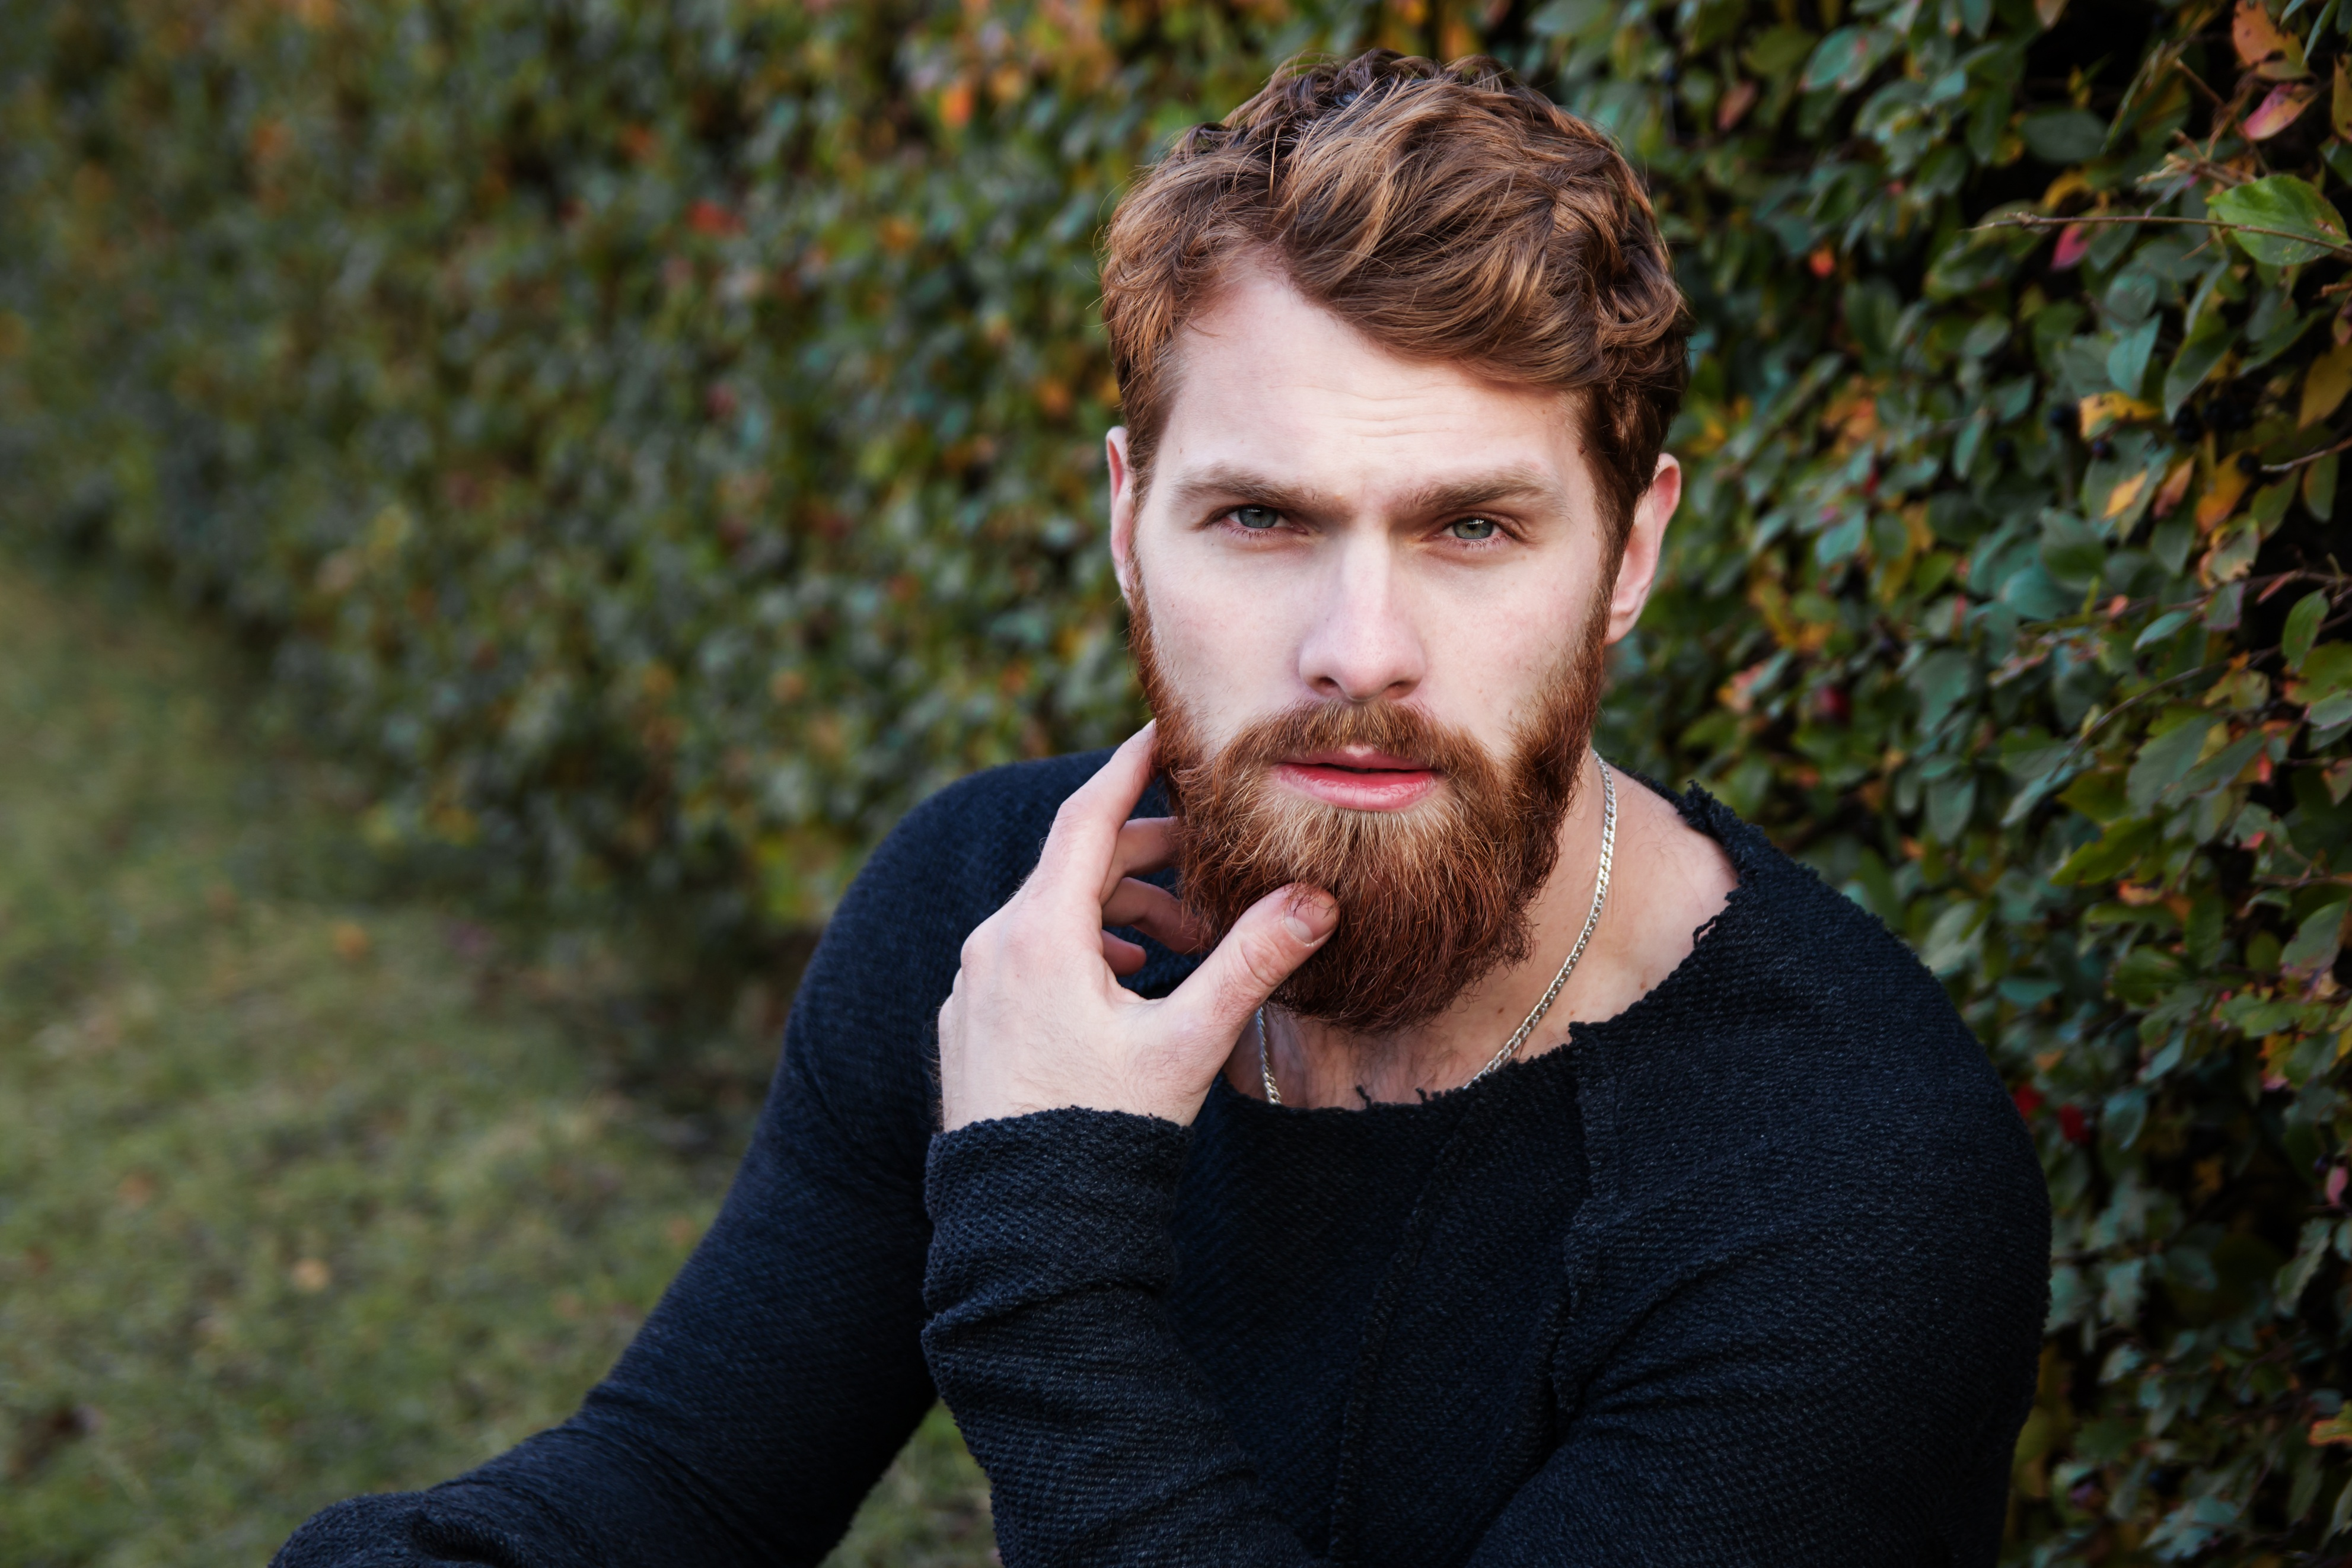 Free stock photos of beard pexels portrait of young man in autumn urmus Image collections